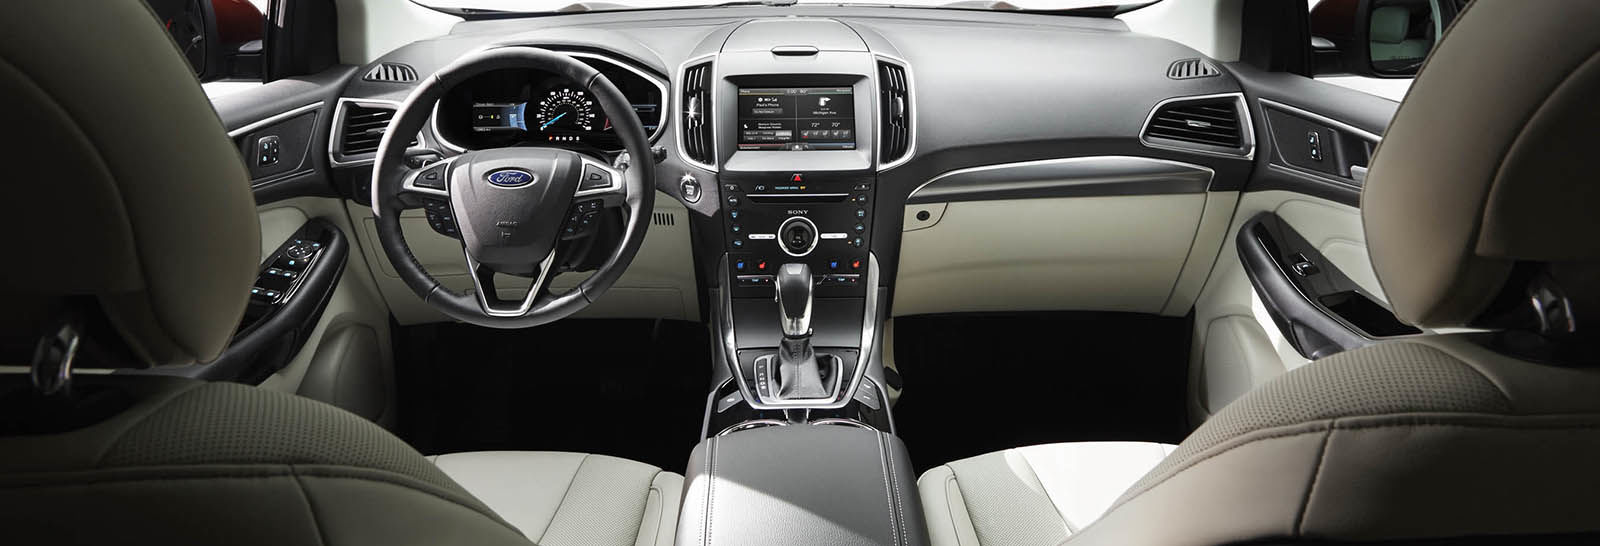 2017 Ford Edge Interior Dimensions